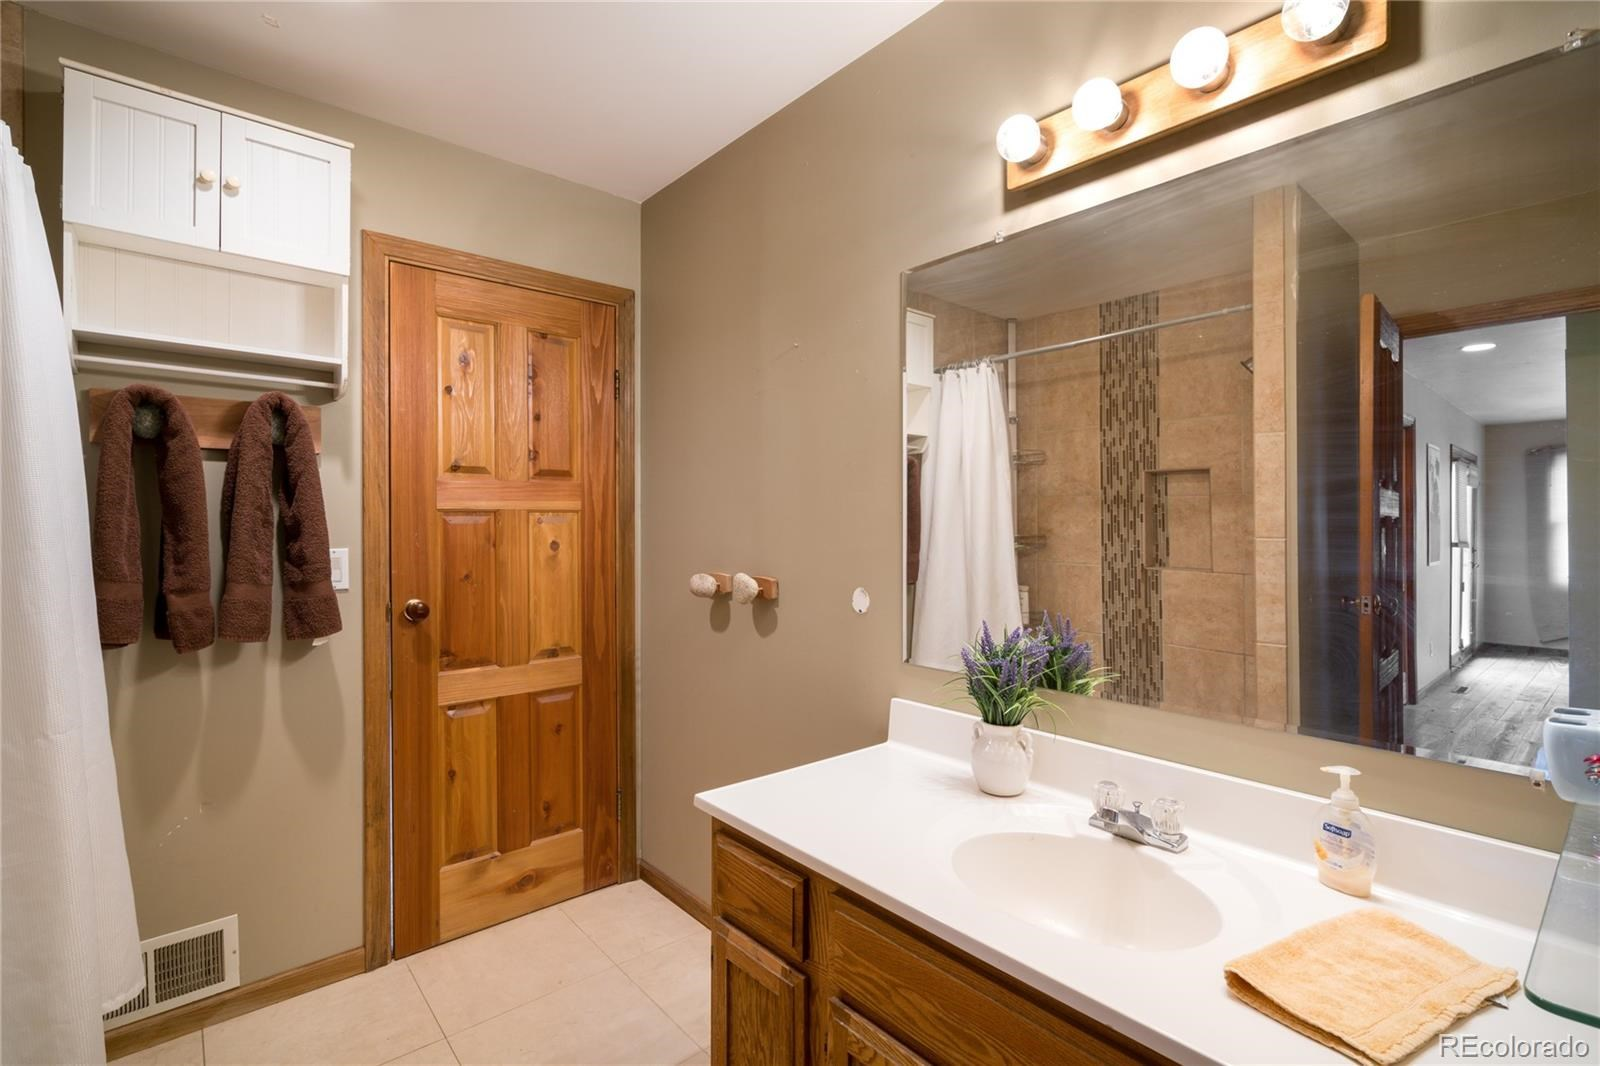 MLS# 3817598 - 4 - 404 Lupine Drive, Steamboat Springs, CO 80487